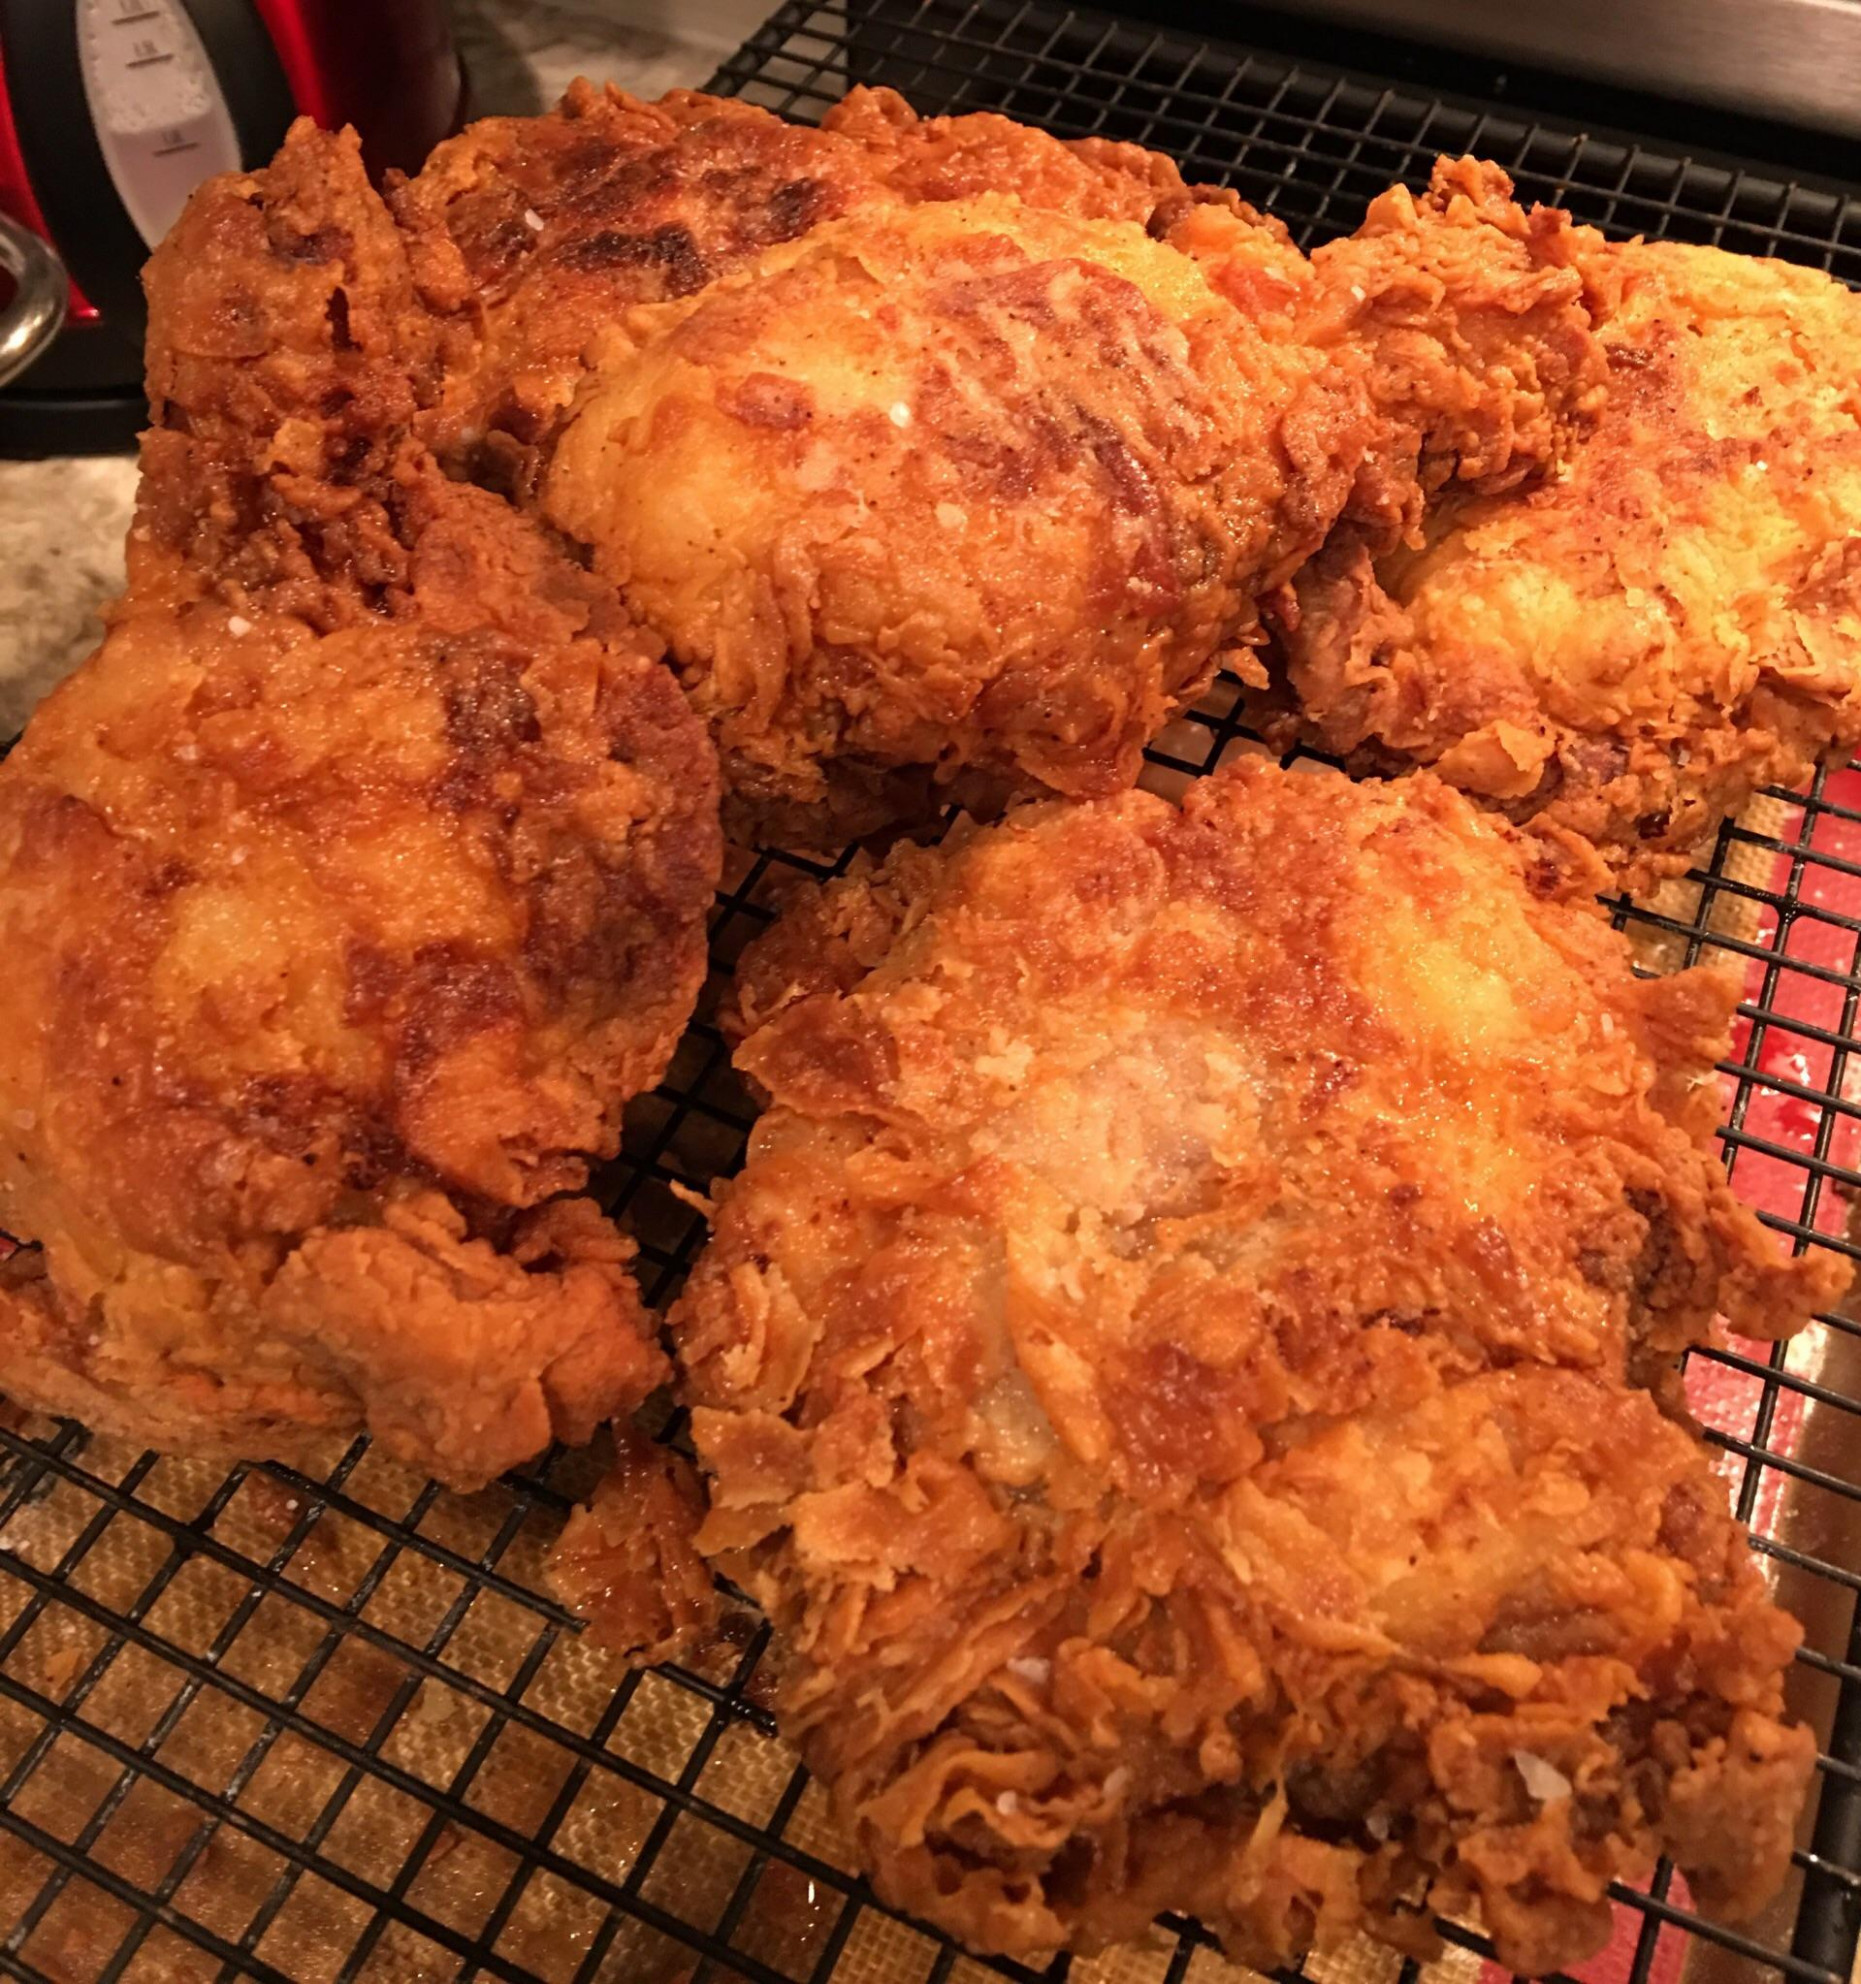 Southern Fried Chicken [Homemade] : food - chicken recipes reddit